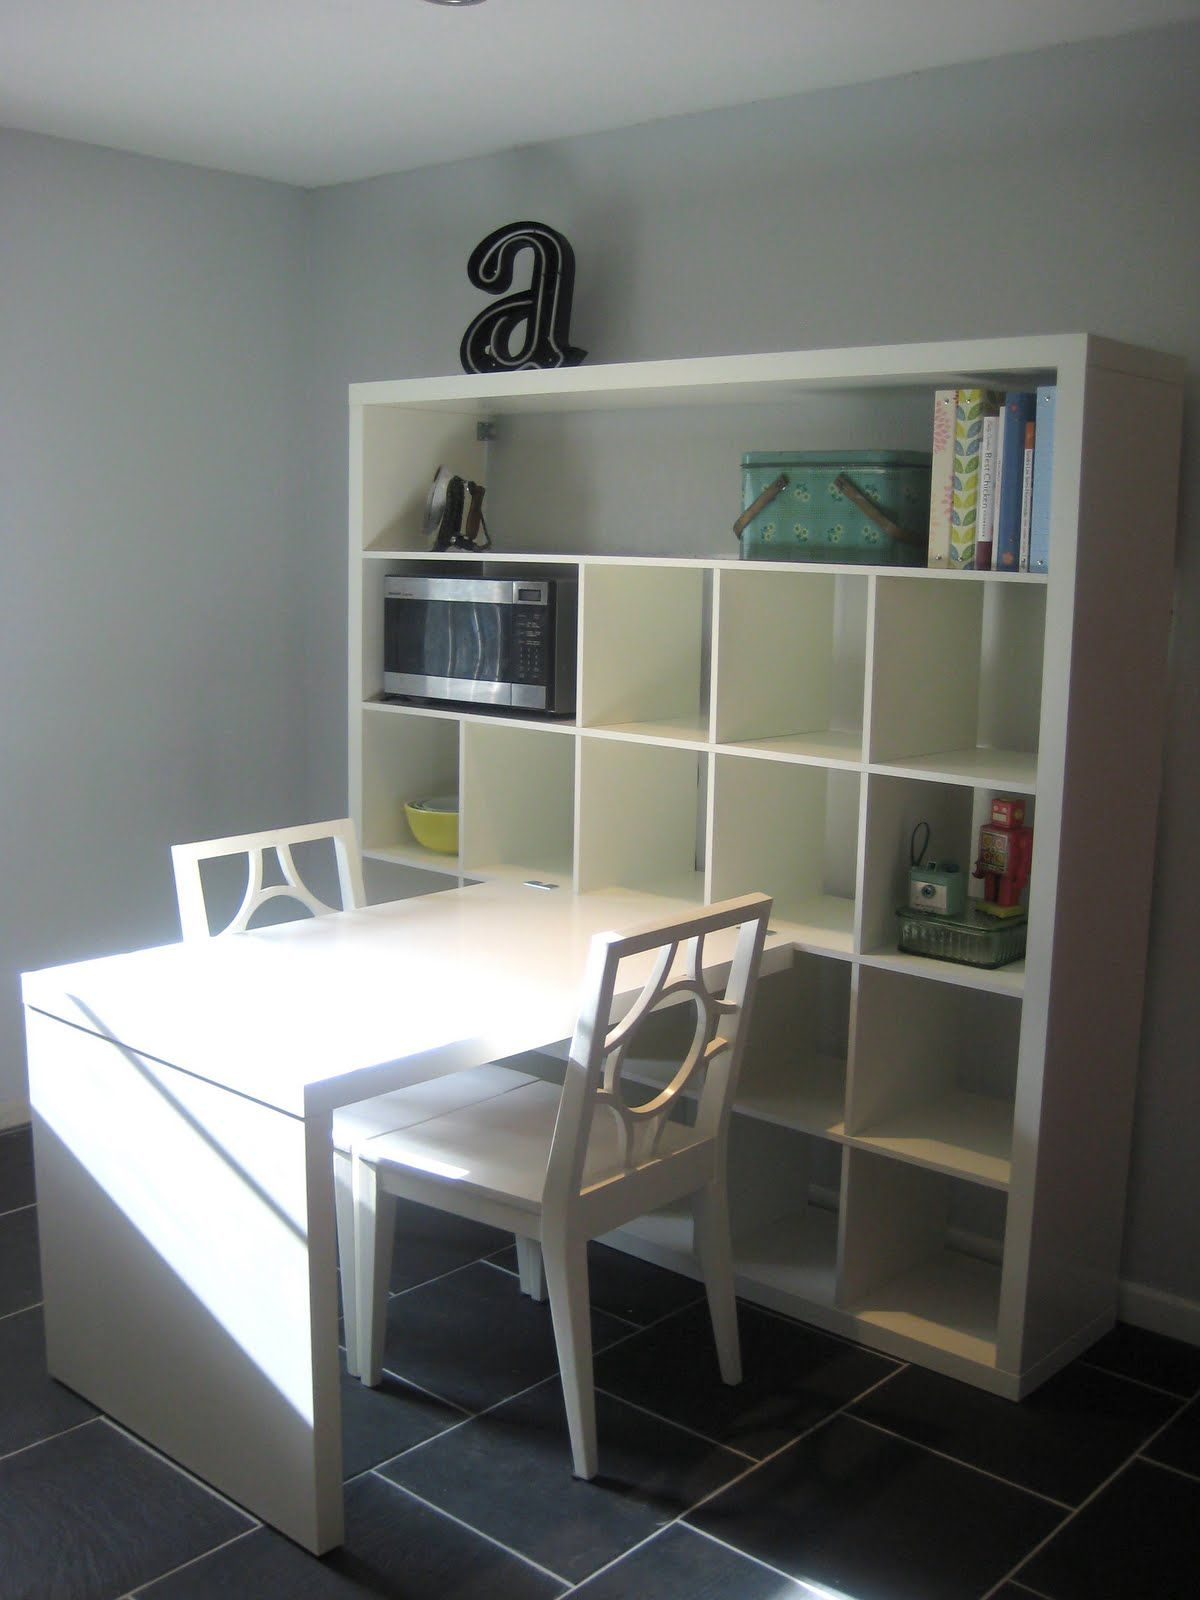 Expedit Ikea Expedit Bookcase Ideas Page 2 Ikea Expedit Bookcase Ideas Shelving Unit Shelving Home